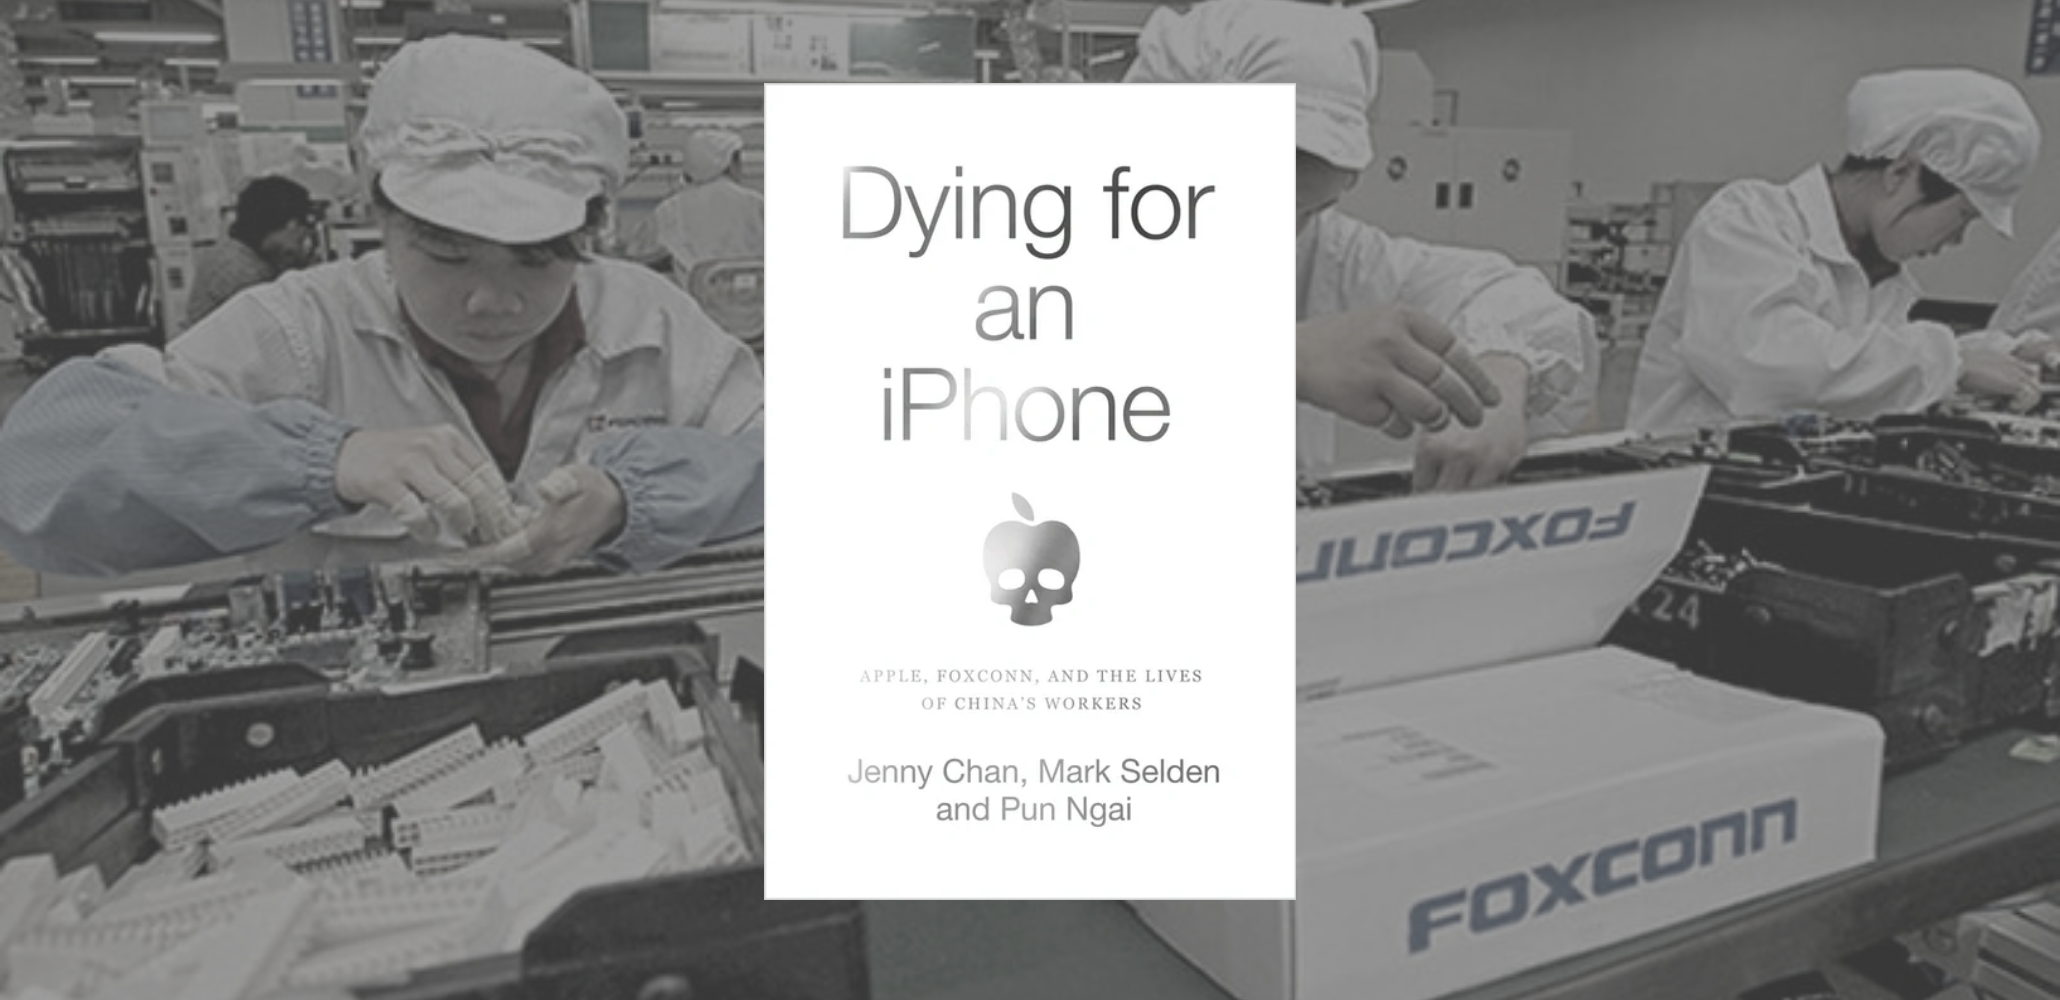 labornotes.org: Review: Dying for an iPhone: Apple, Foxconn, and the Lives of China's Workers